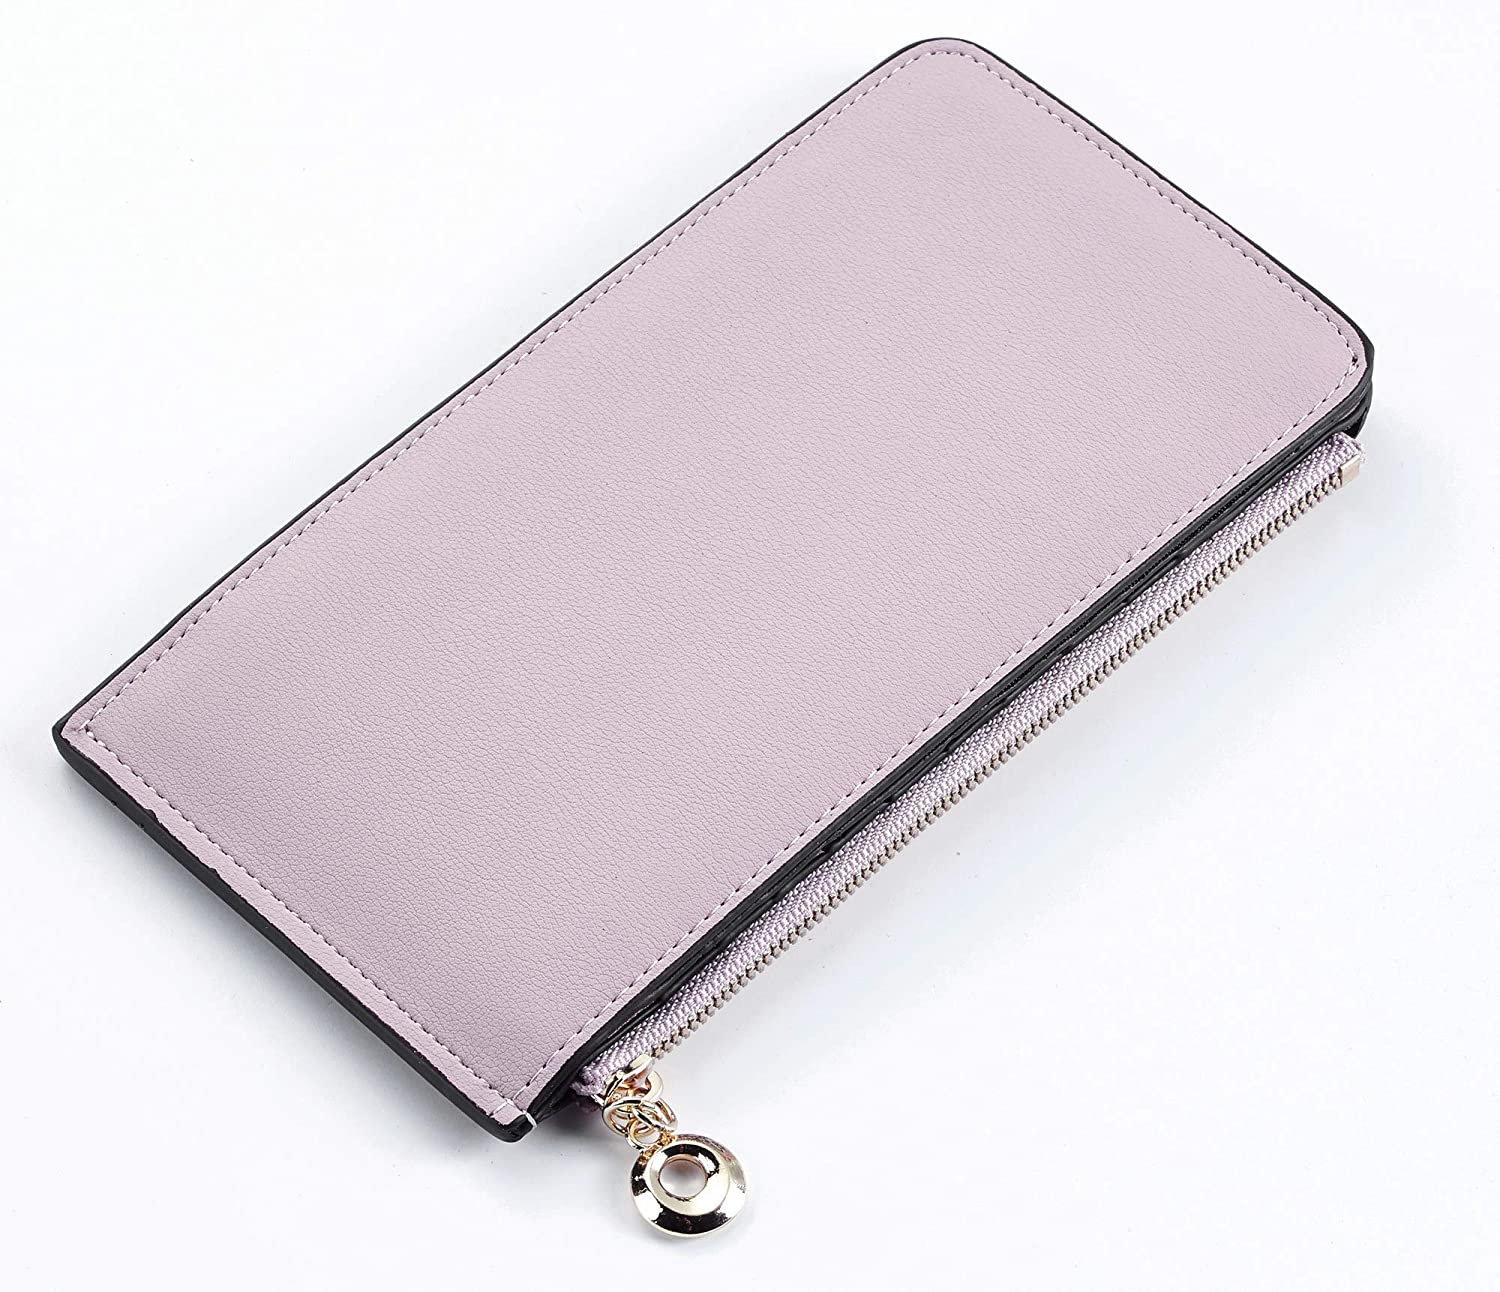 Toughergun Womens RFID Blocking Genuine Leather Multi Card Organizer Wallet with Zipper Pocket